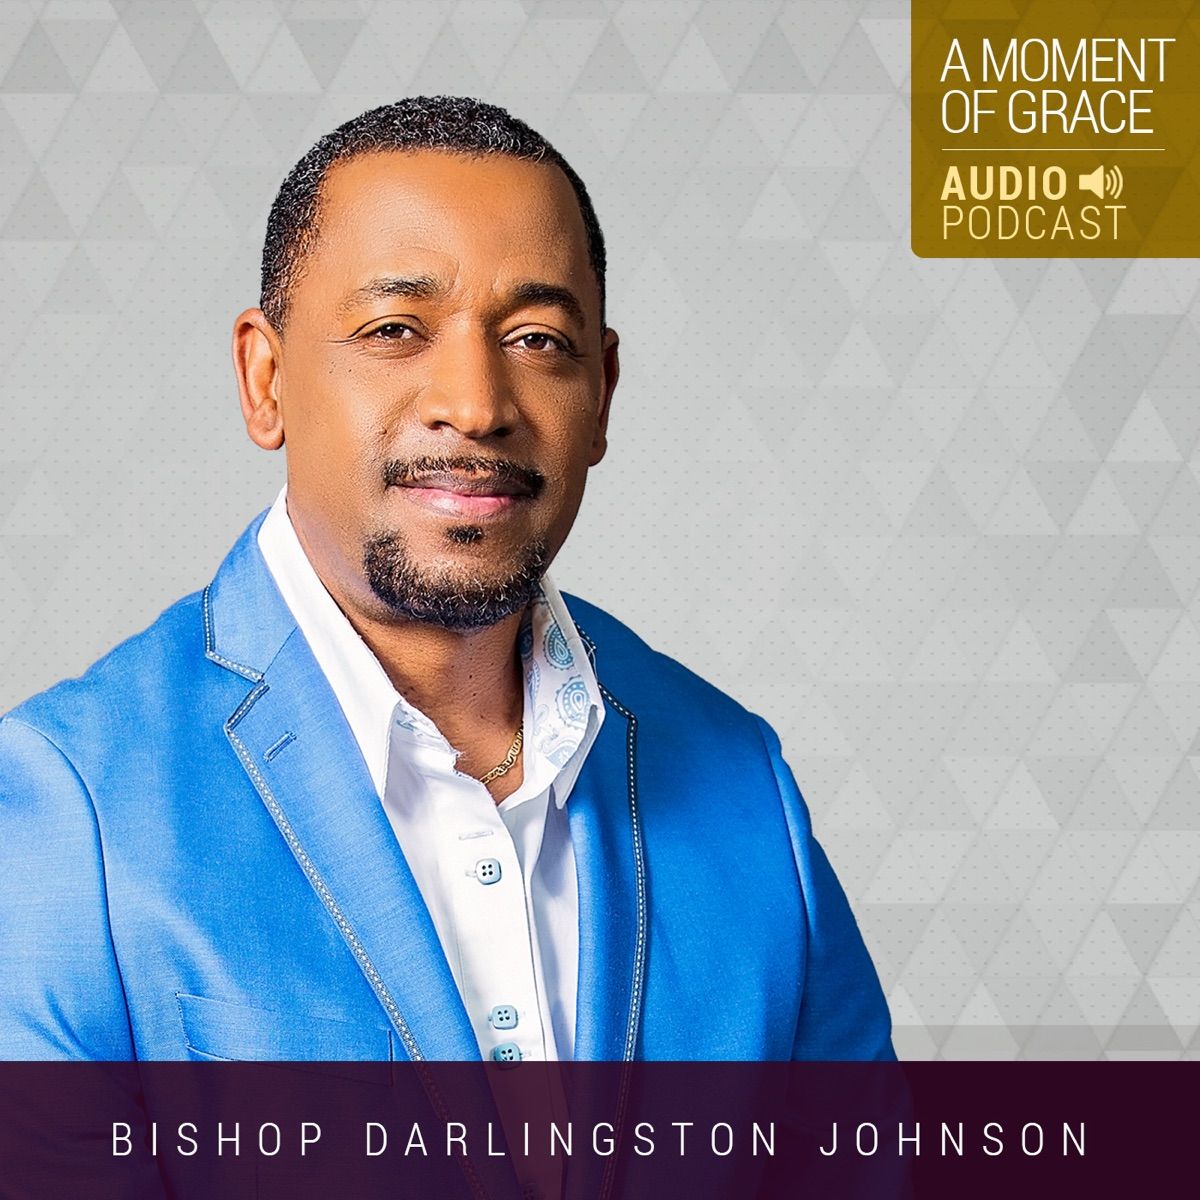 A Moment of Grace with Bishop Darlingston Johnson